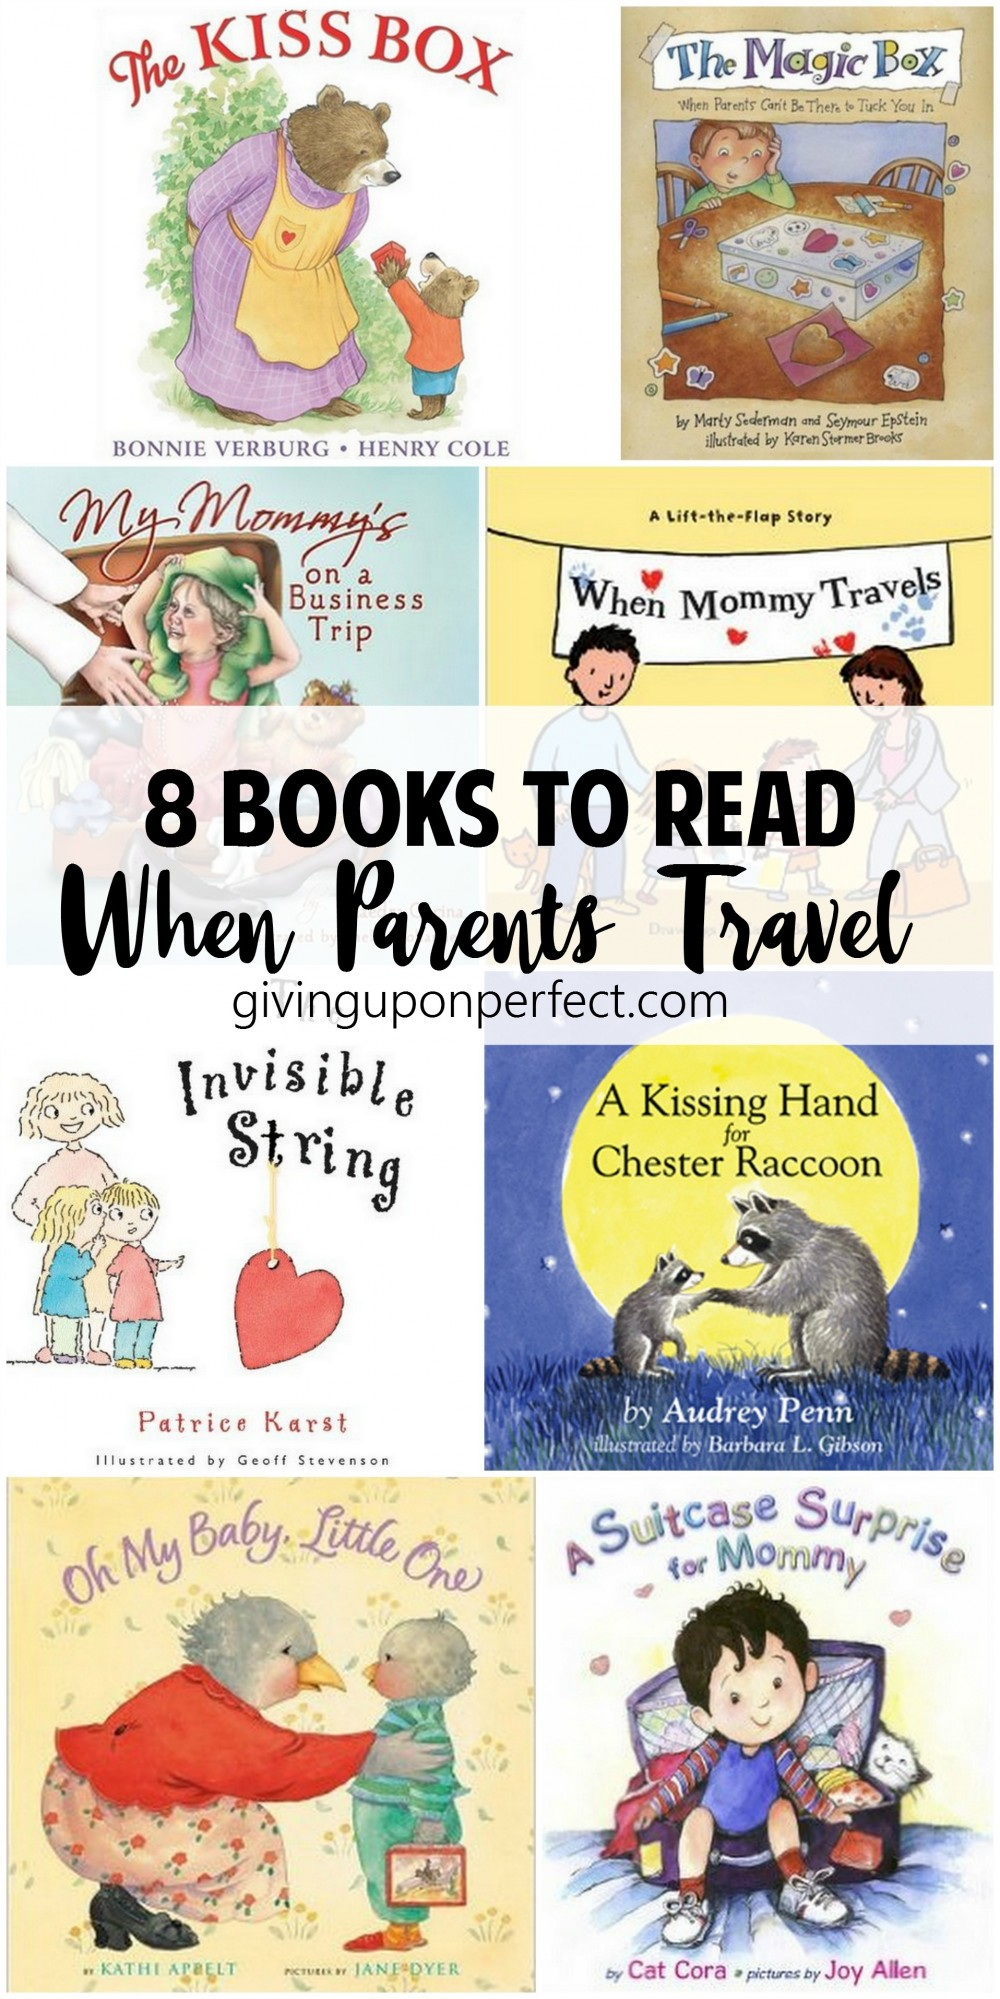 Children's Books to Read When Parents Travel